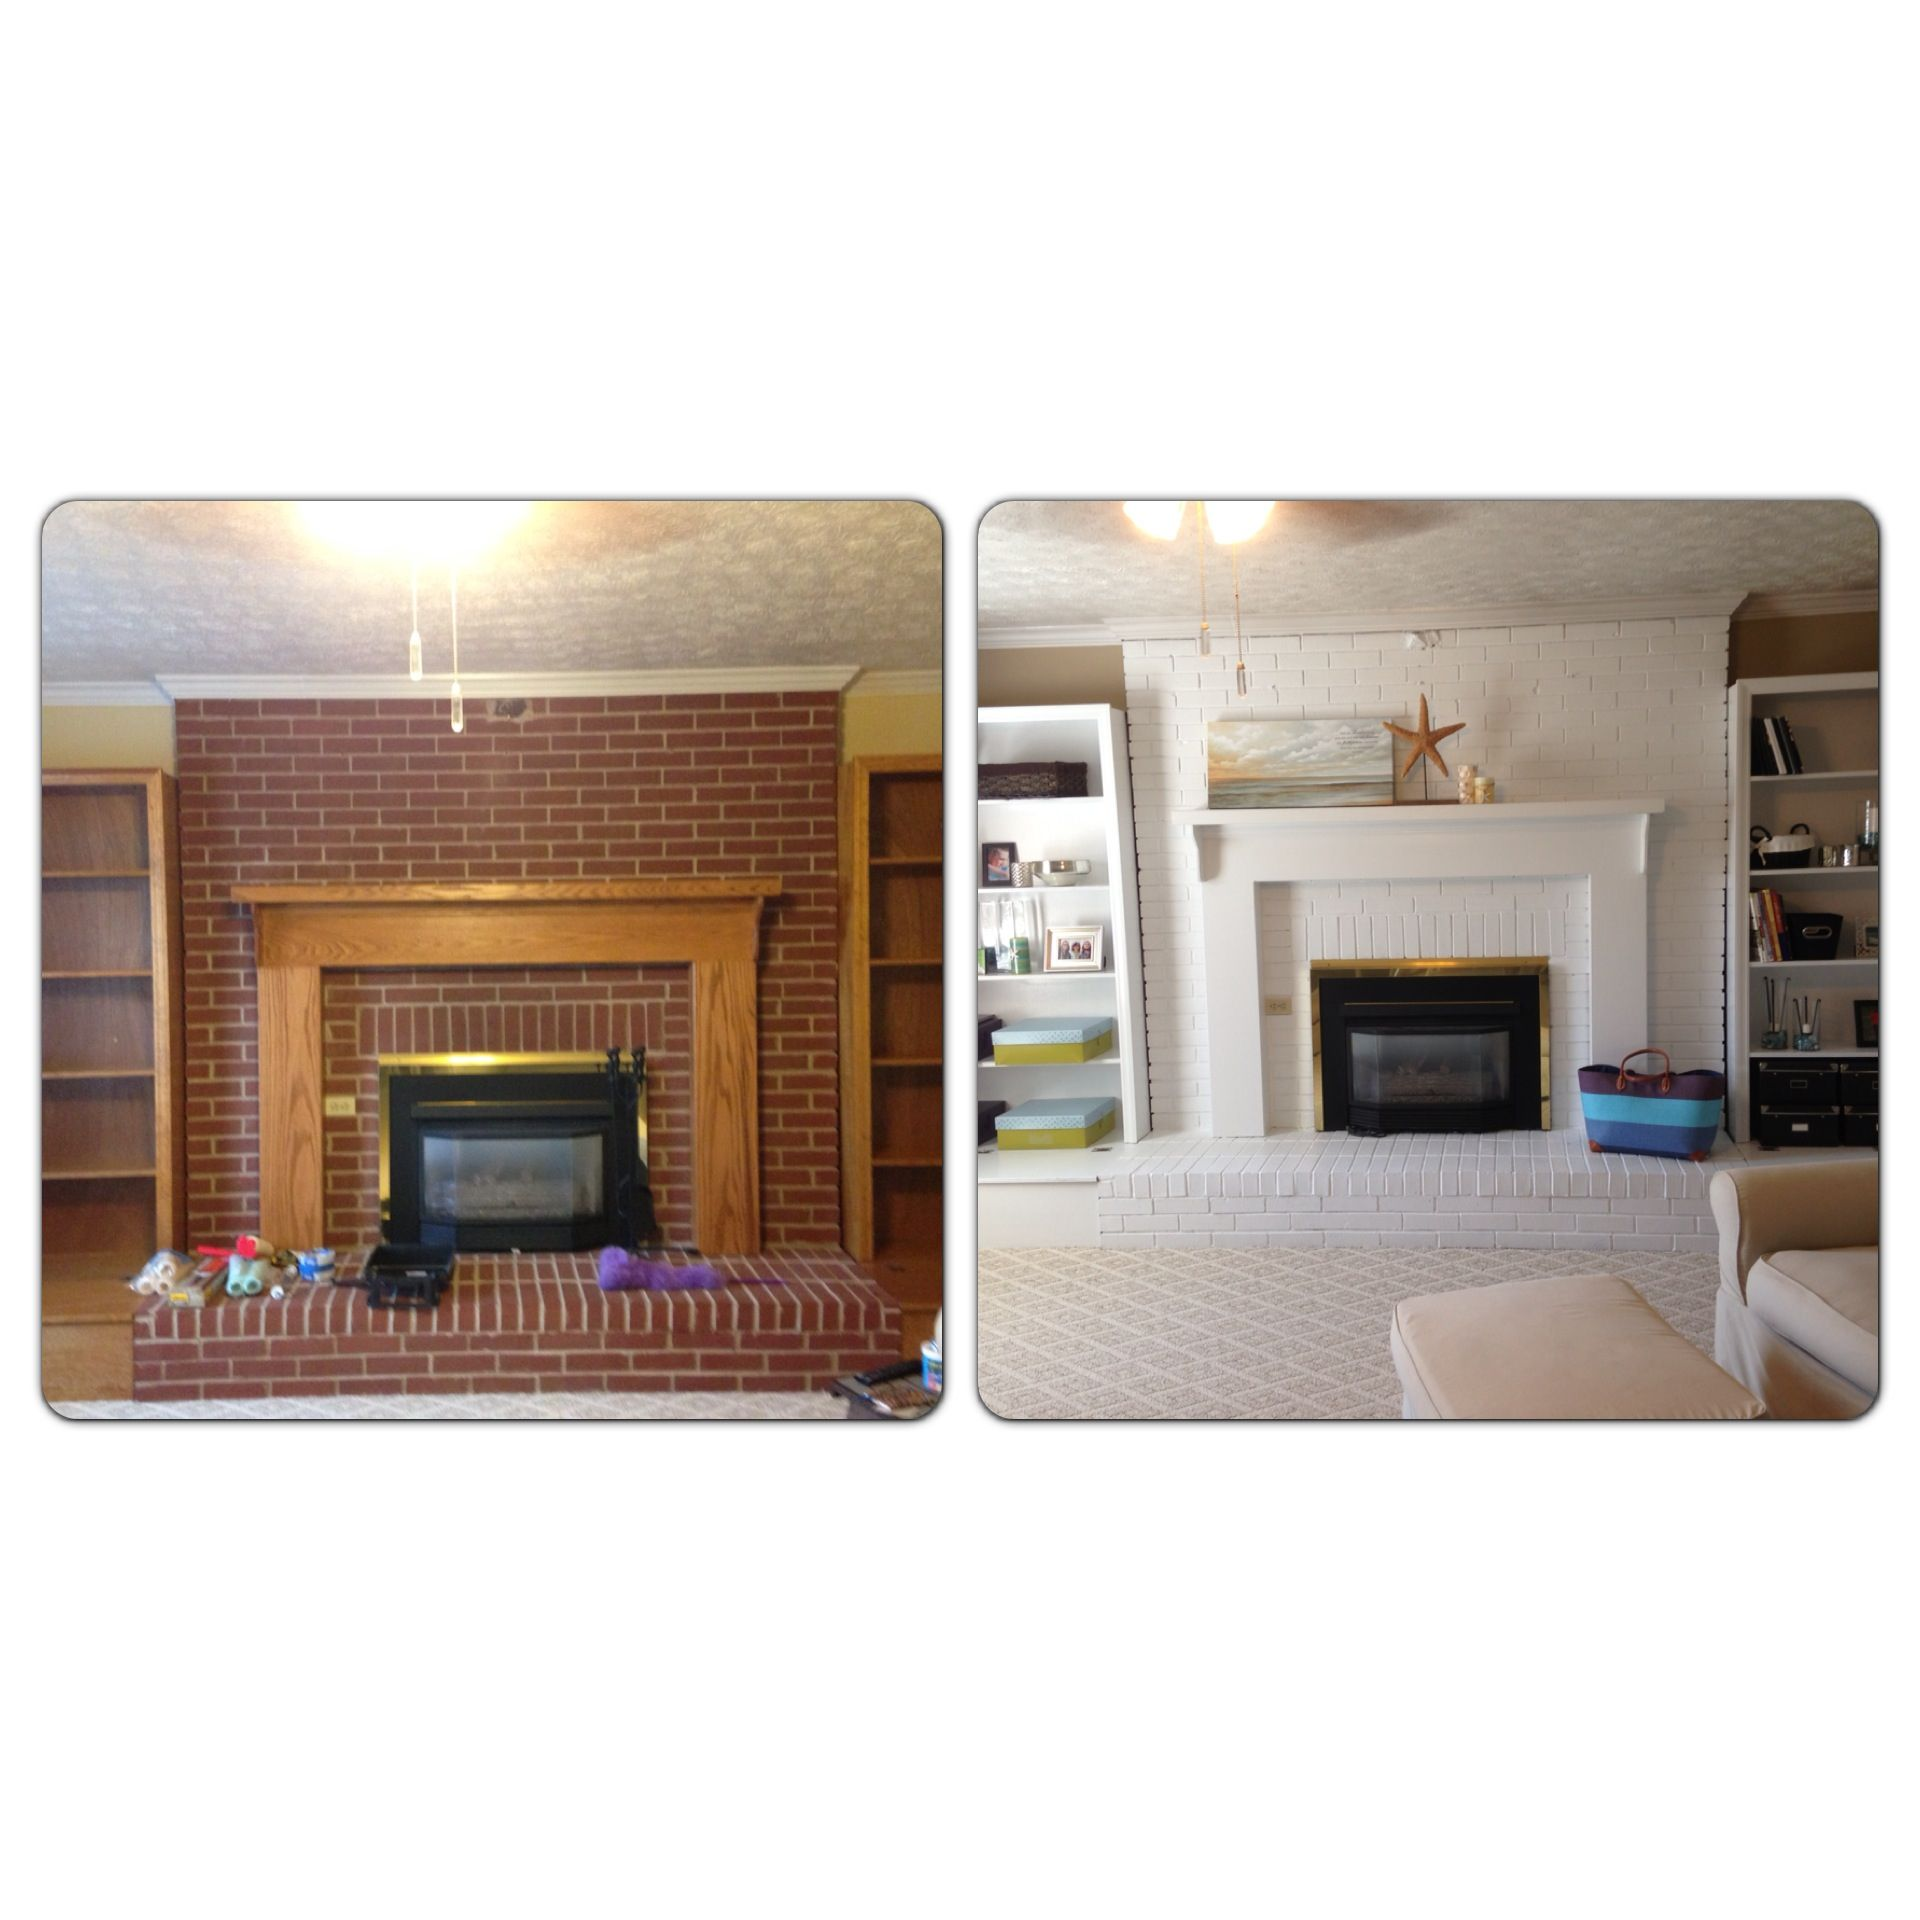 My Before And After Fireplace And Bookshelves